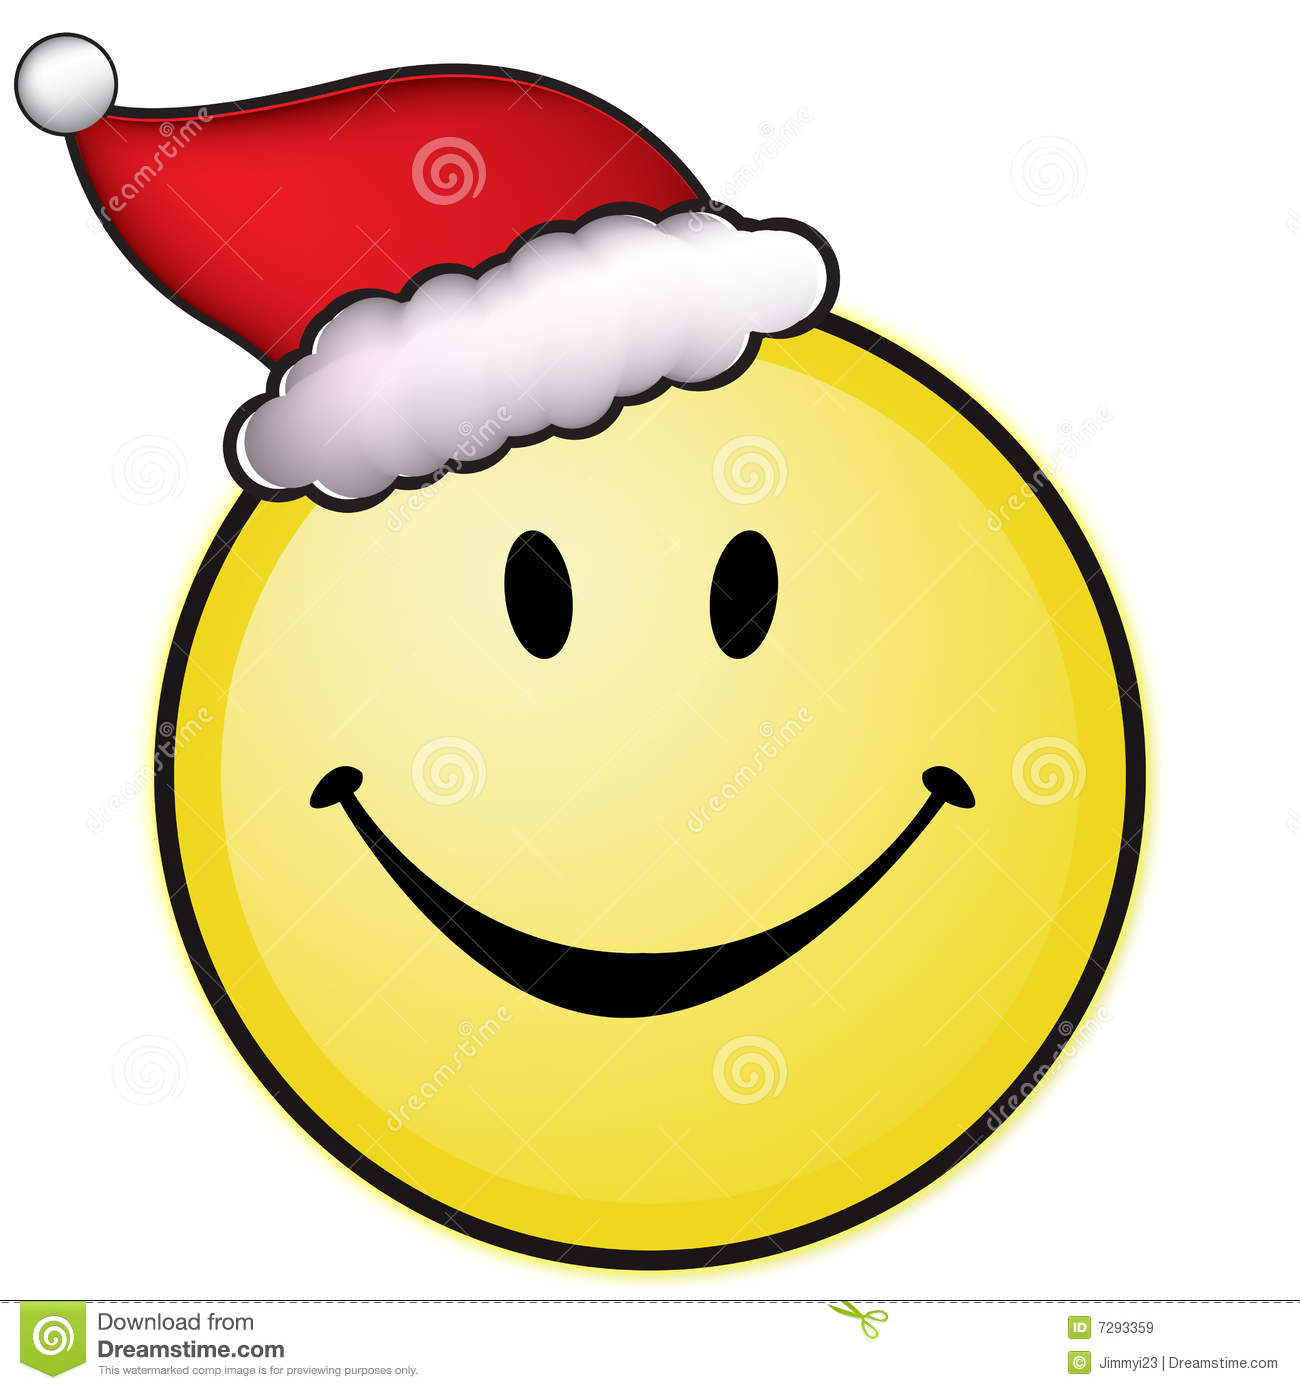 Smiley Face With Santa Hat Royalty Free Stock Images - Image: 7293359